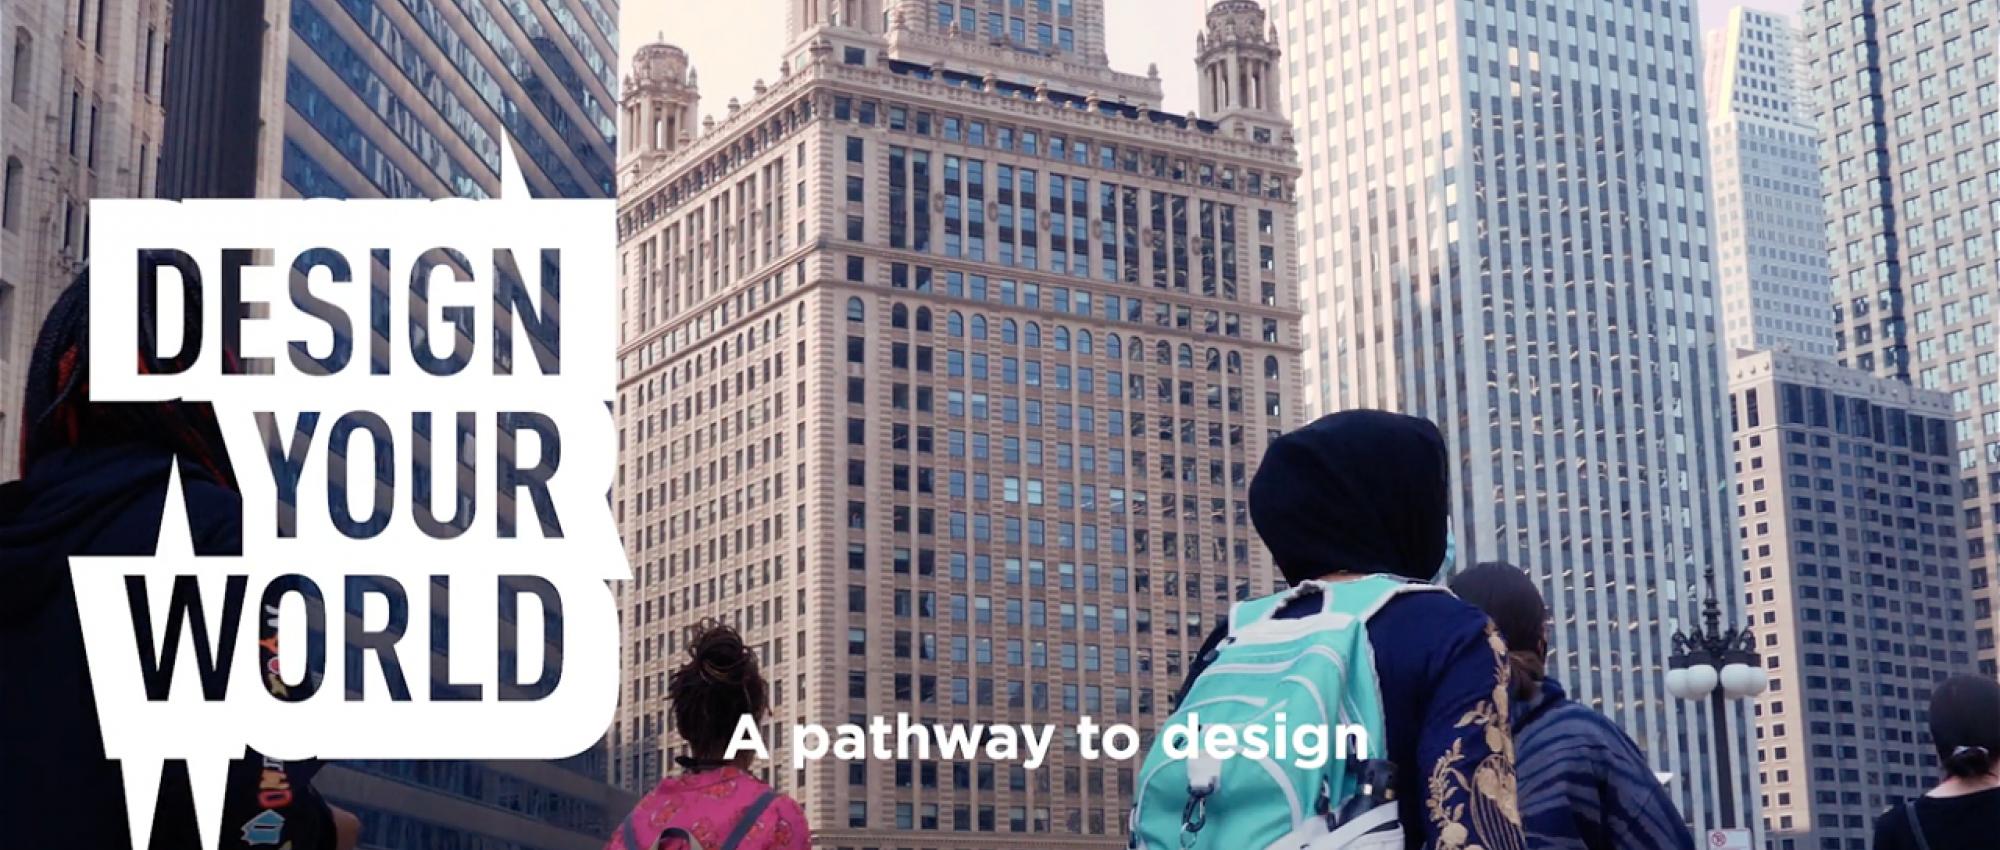 Design Your World: A pathway to design